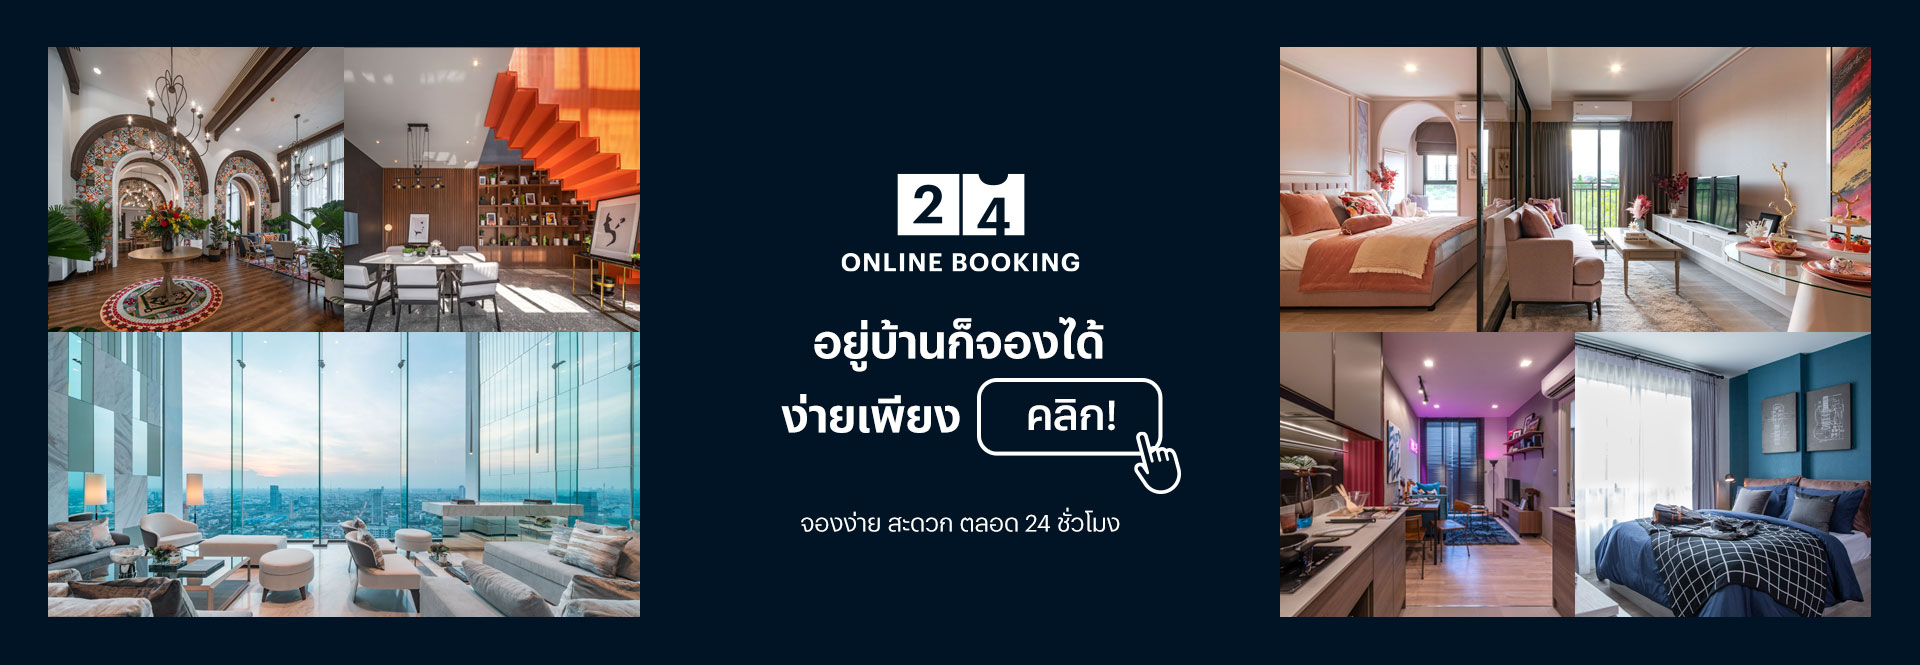 Online Booking 24